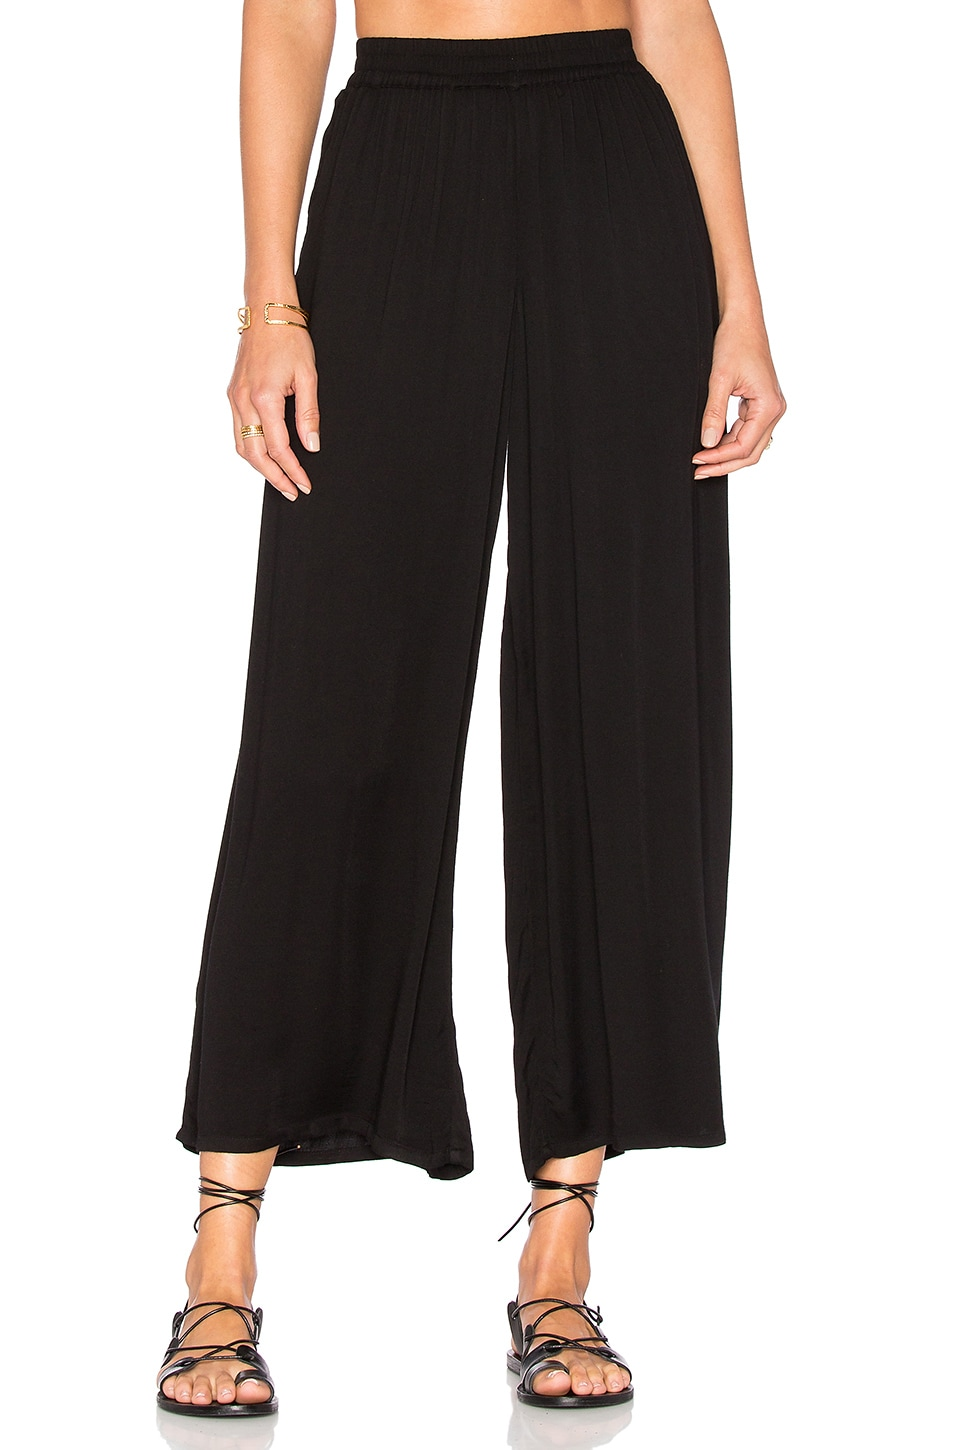 Photo of Dessa Pant by Young, Fabulous & Broke on sale